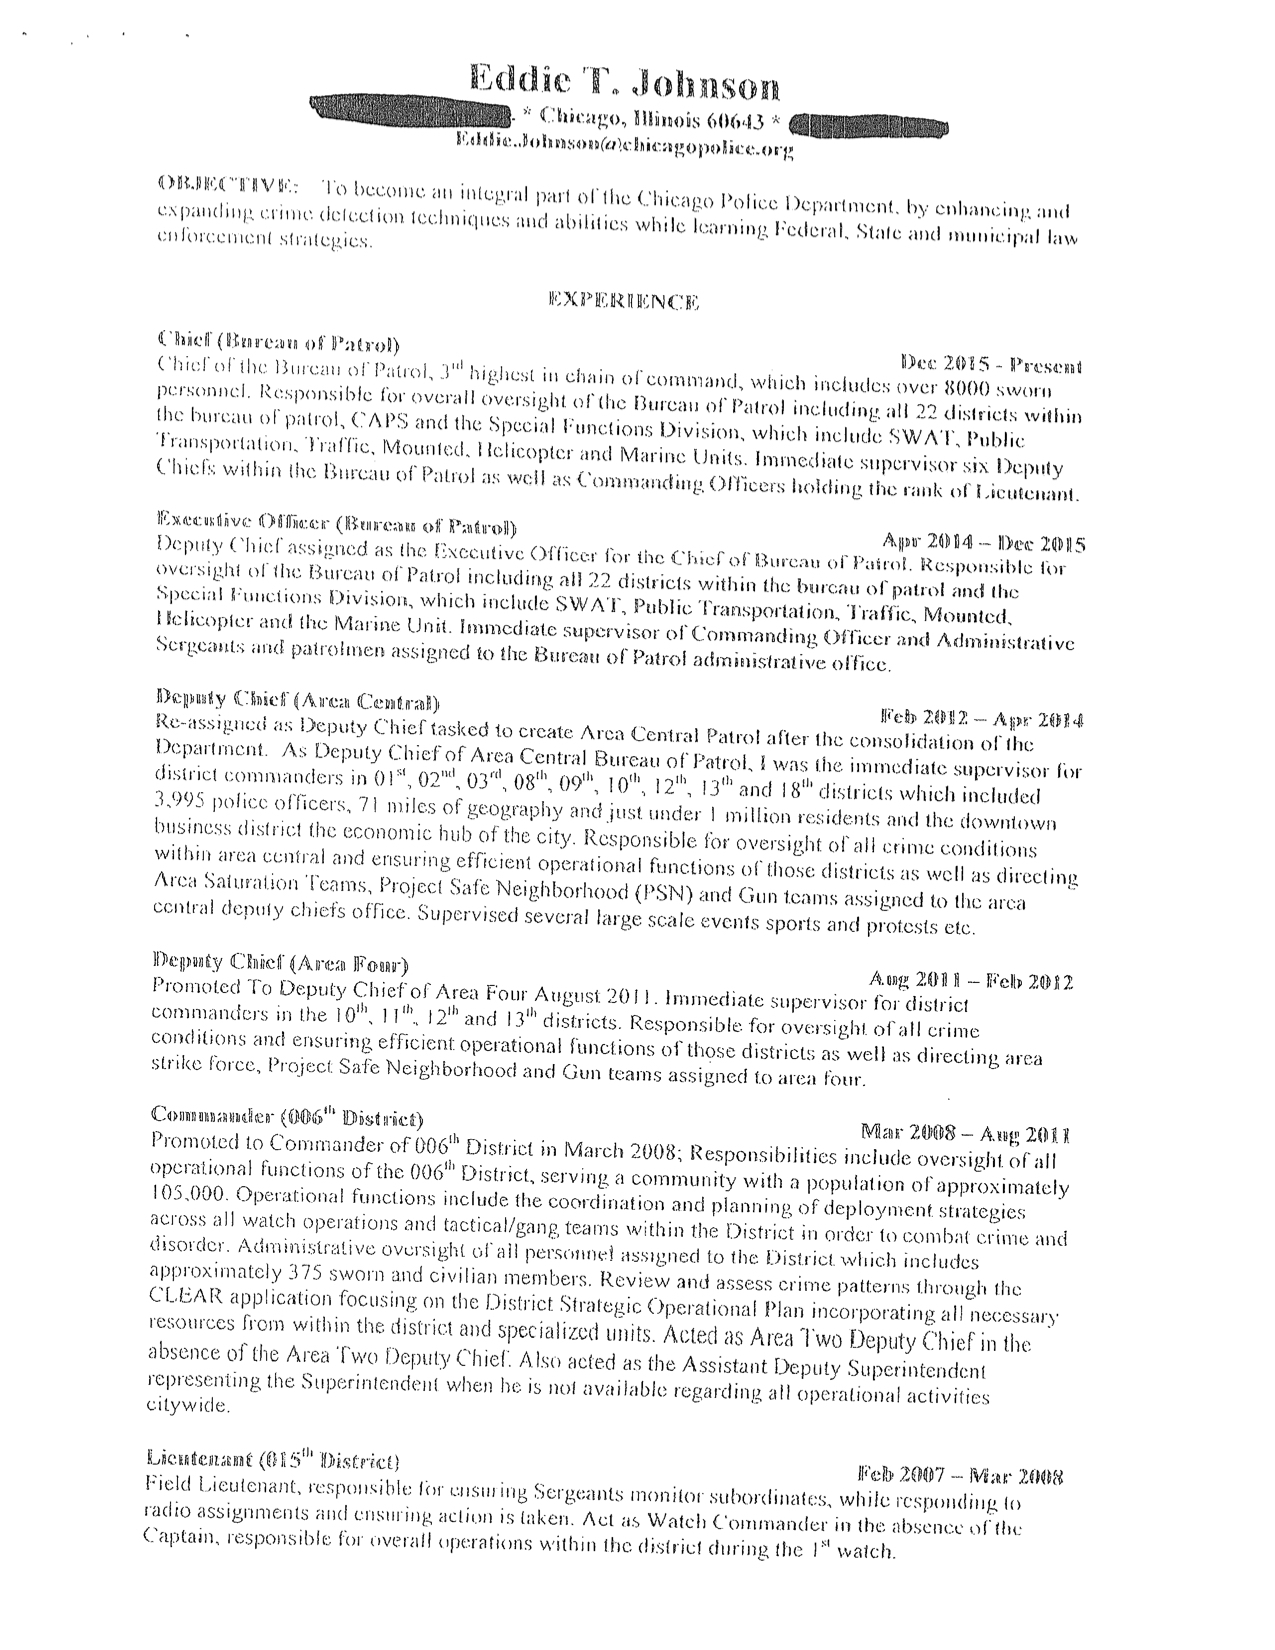 read the resume of chicago police chief eddie johnson chicago city wire - Law Enforcement Resume